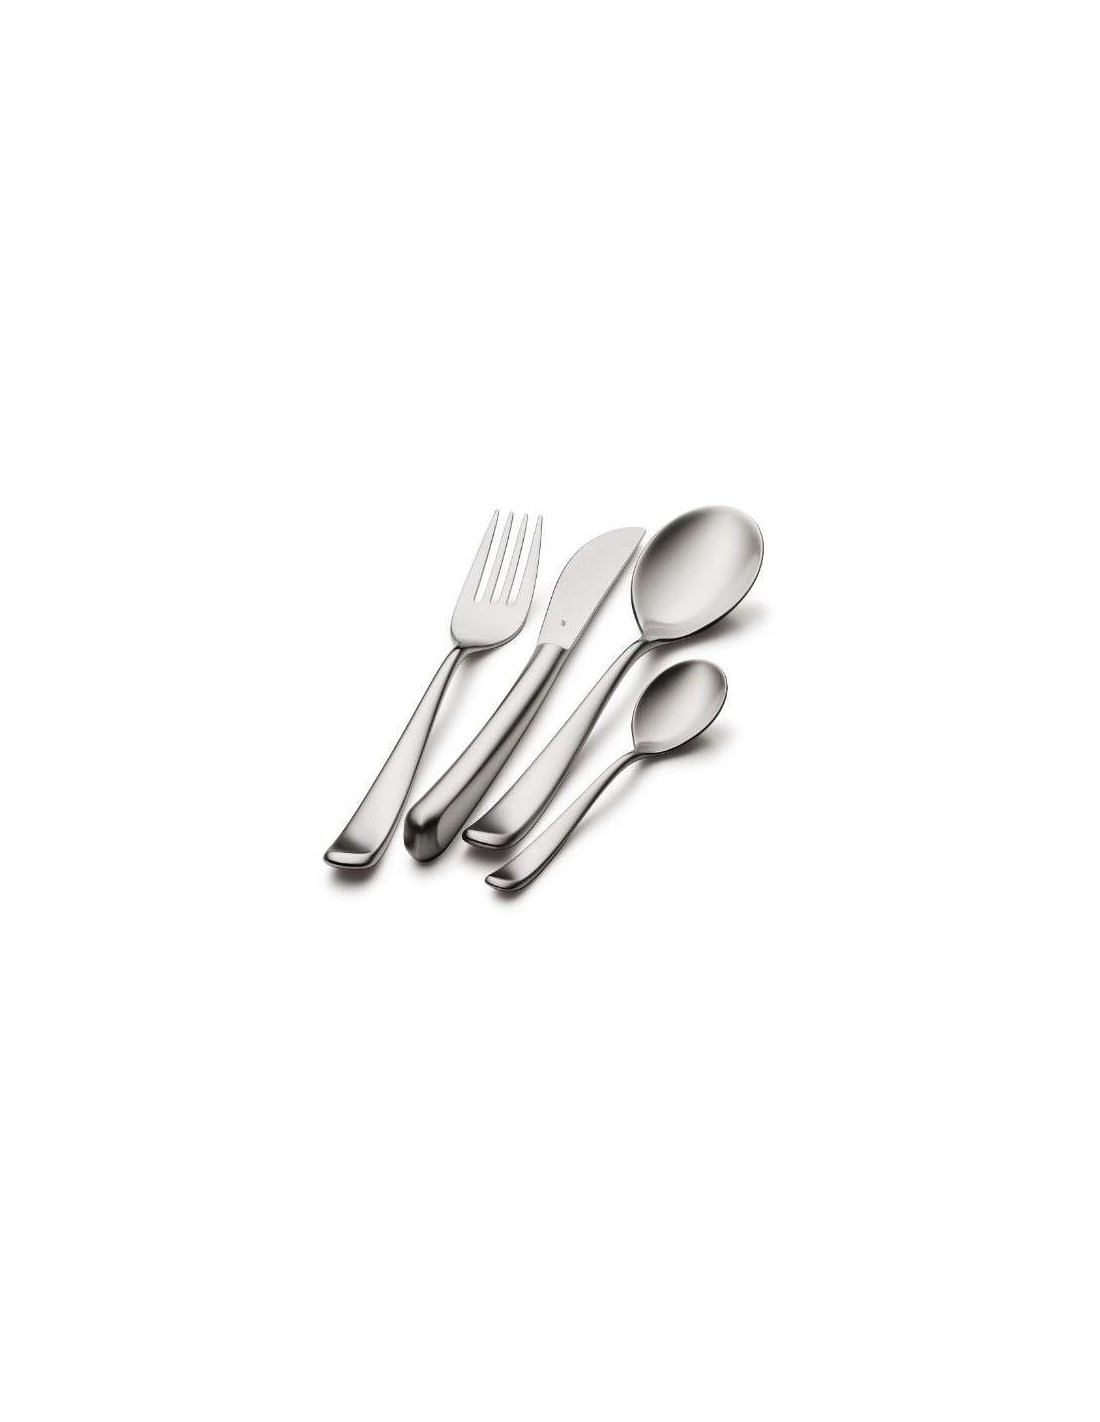 WMF Vision 24 Piece Cutlery Set  sc 1 st  MIMOCOOK & WMF Vision 24 Piece Cutlery Set | MIMOCOOK - Online Store